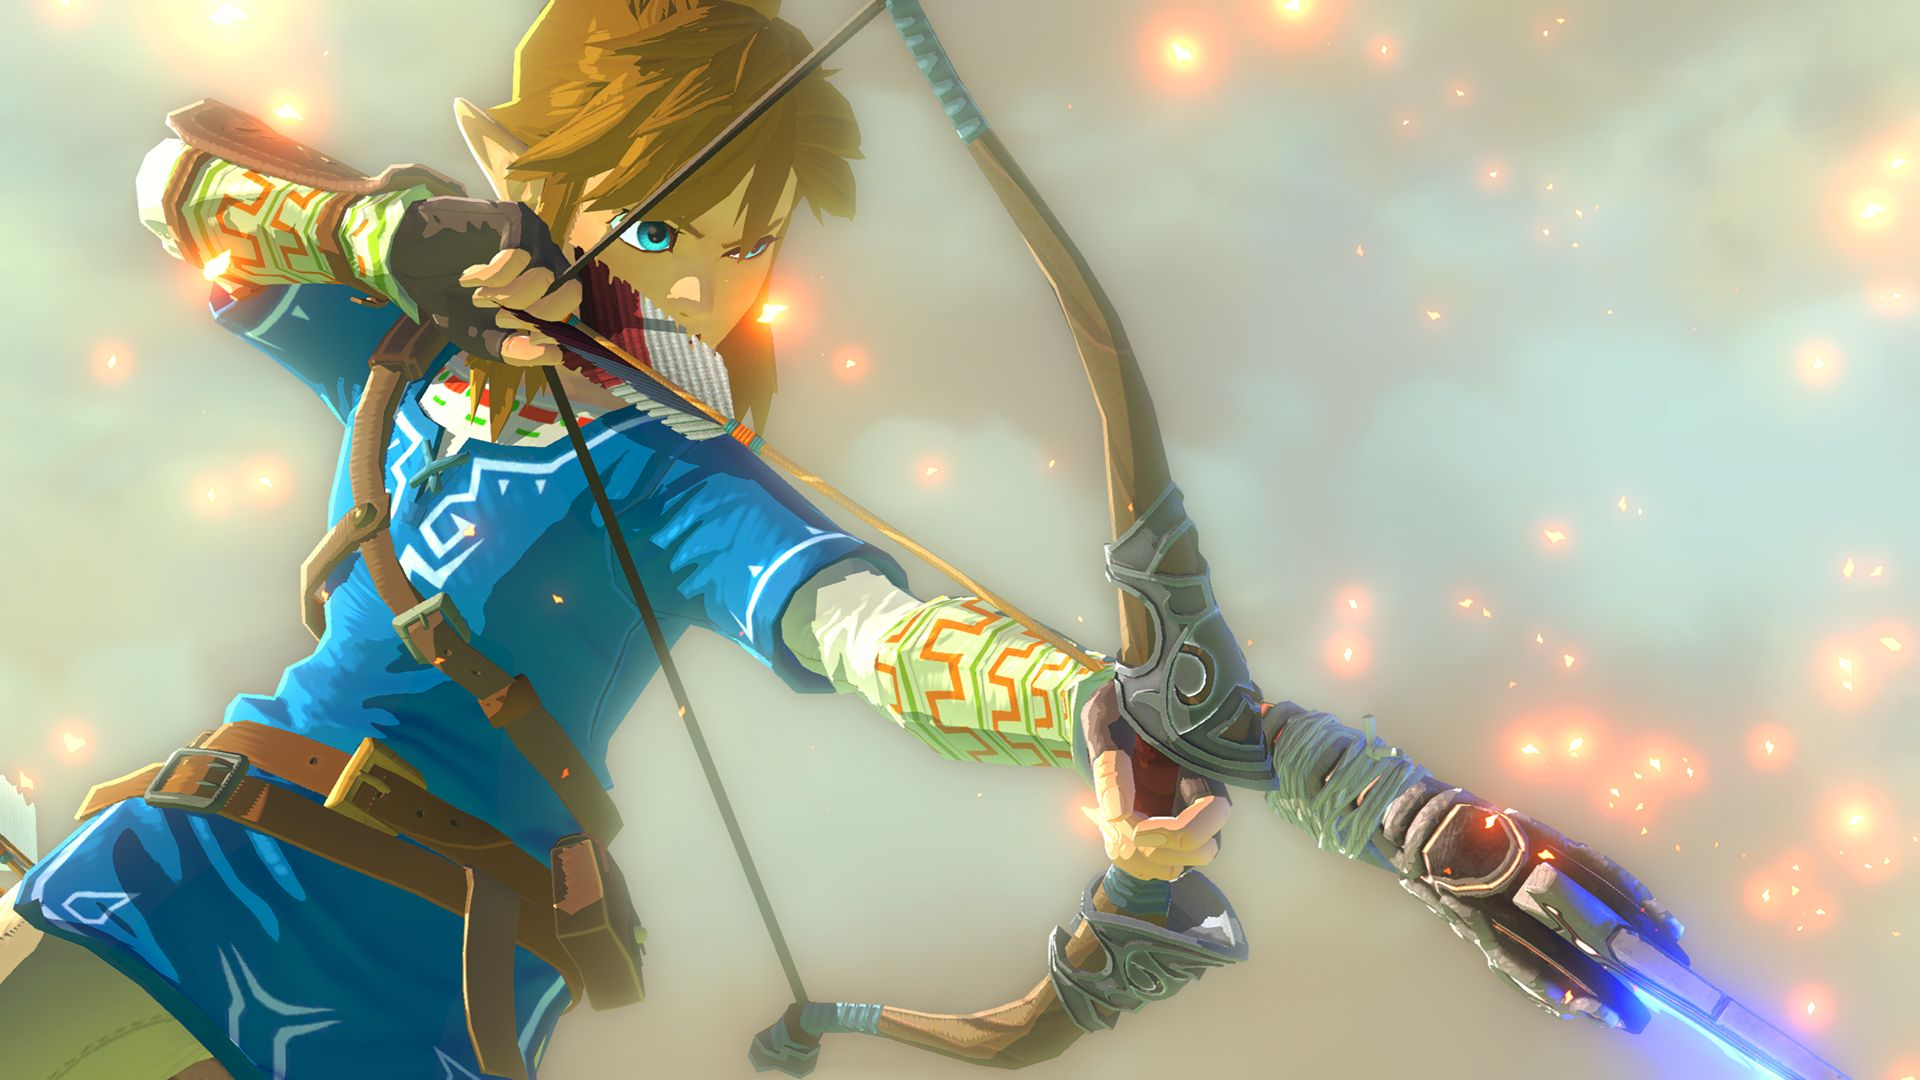 Link aiming an arrow in The Legend of Zelda: Breath of the Wild